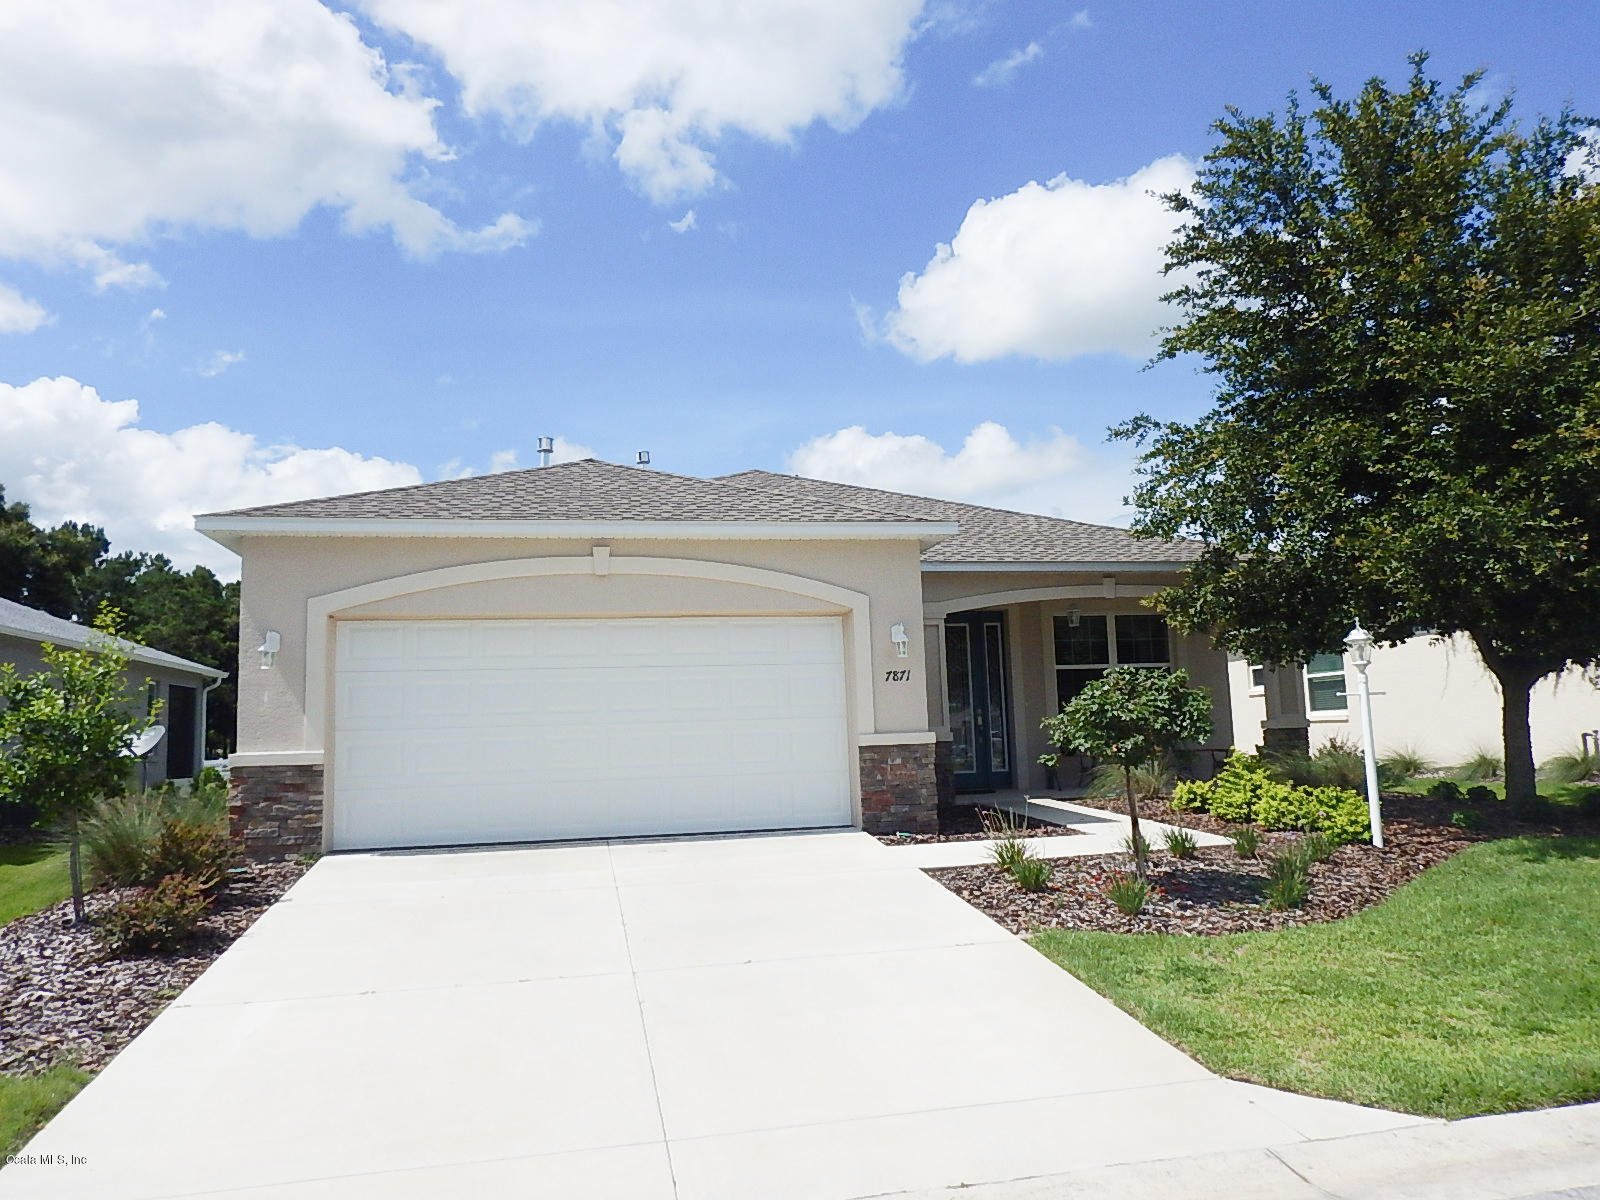 7871 SW 82ND PLACE, OCALA, FL 34476